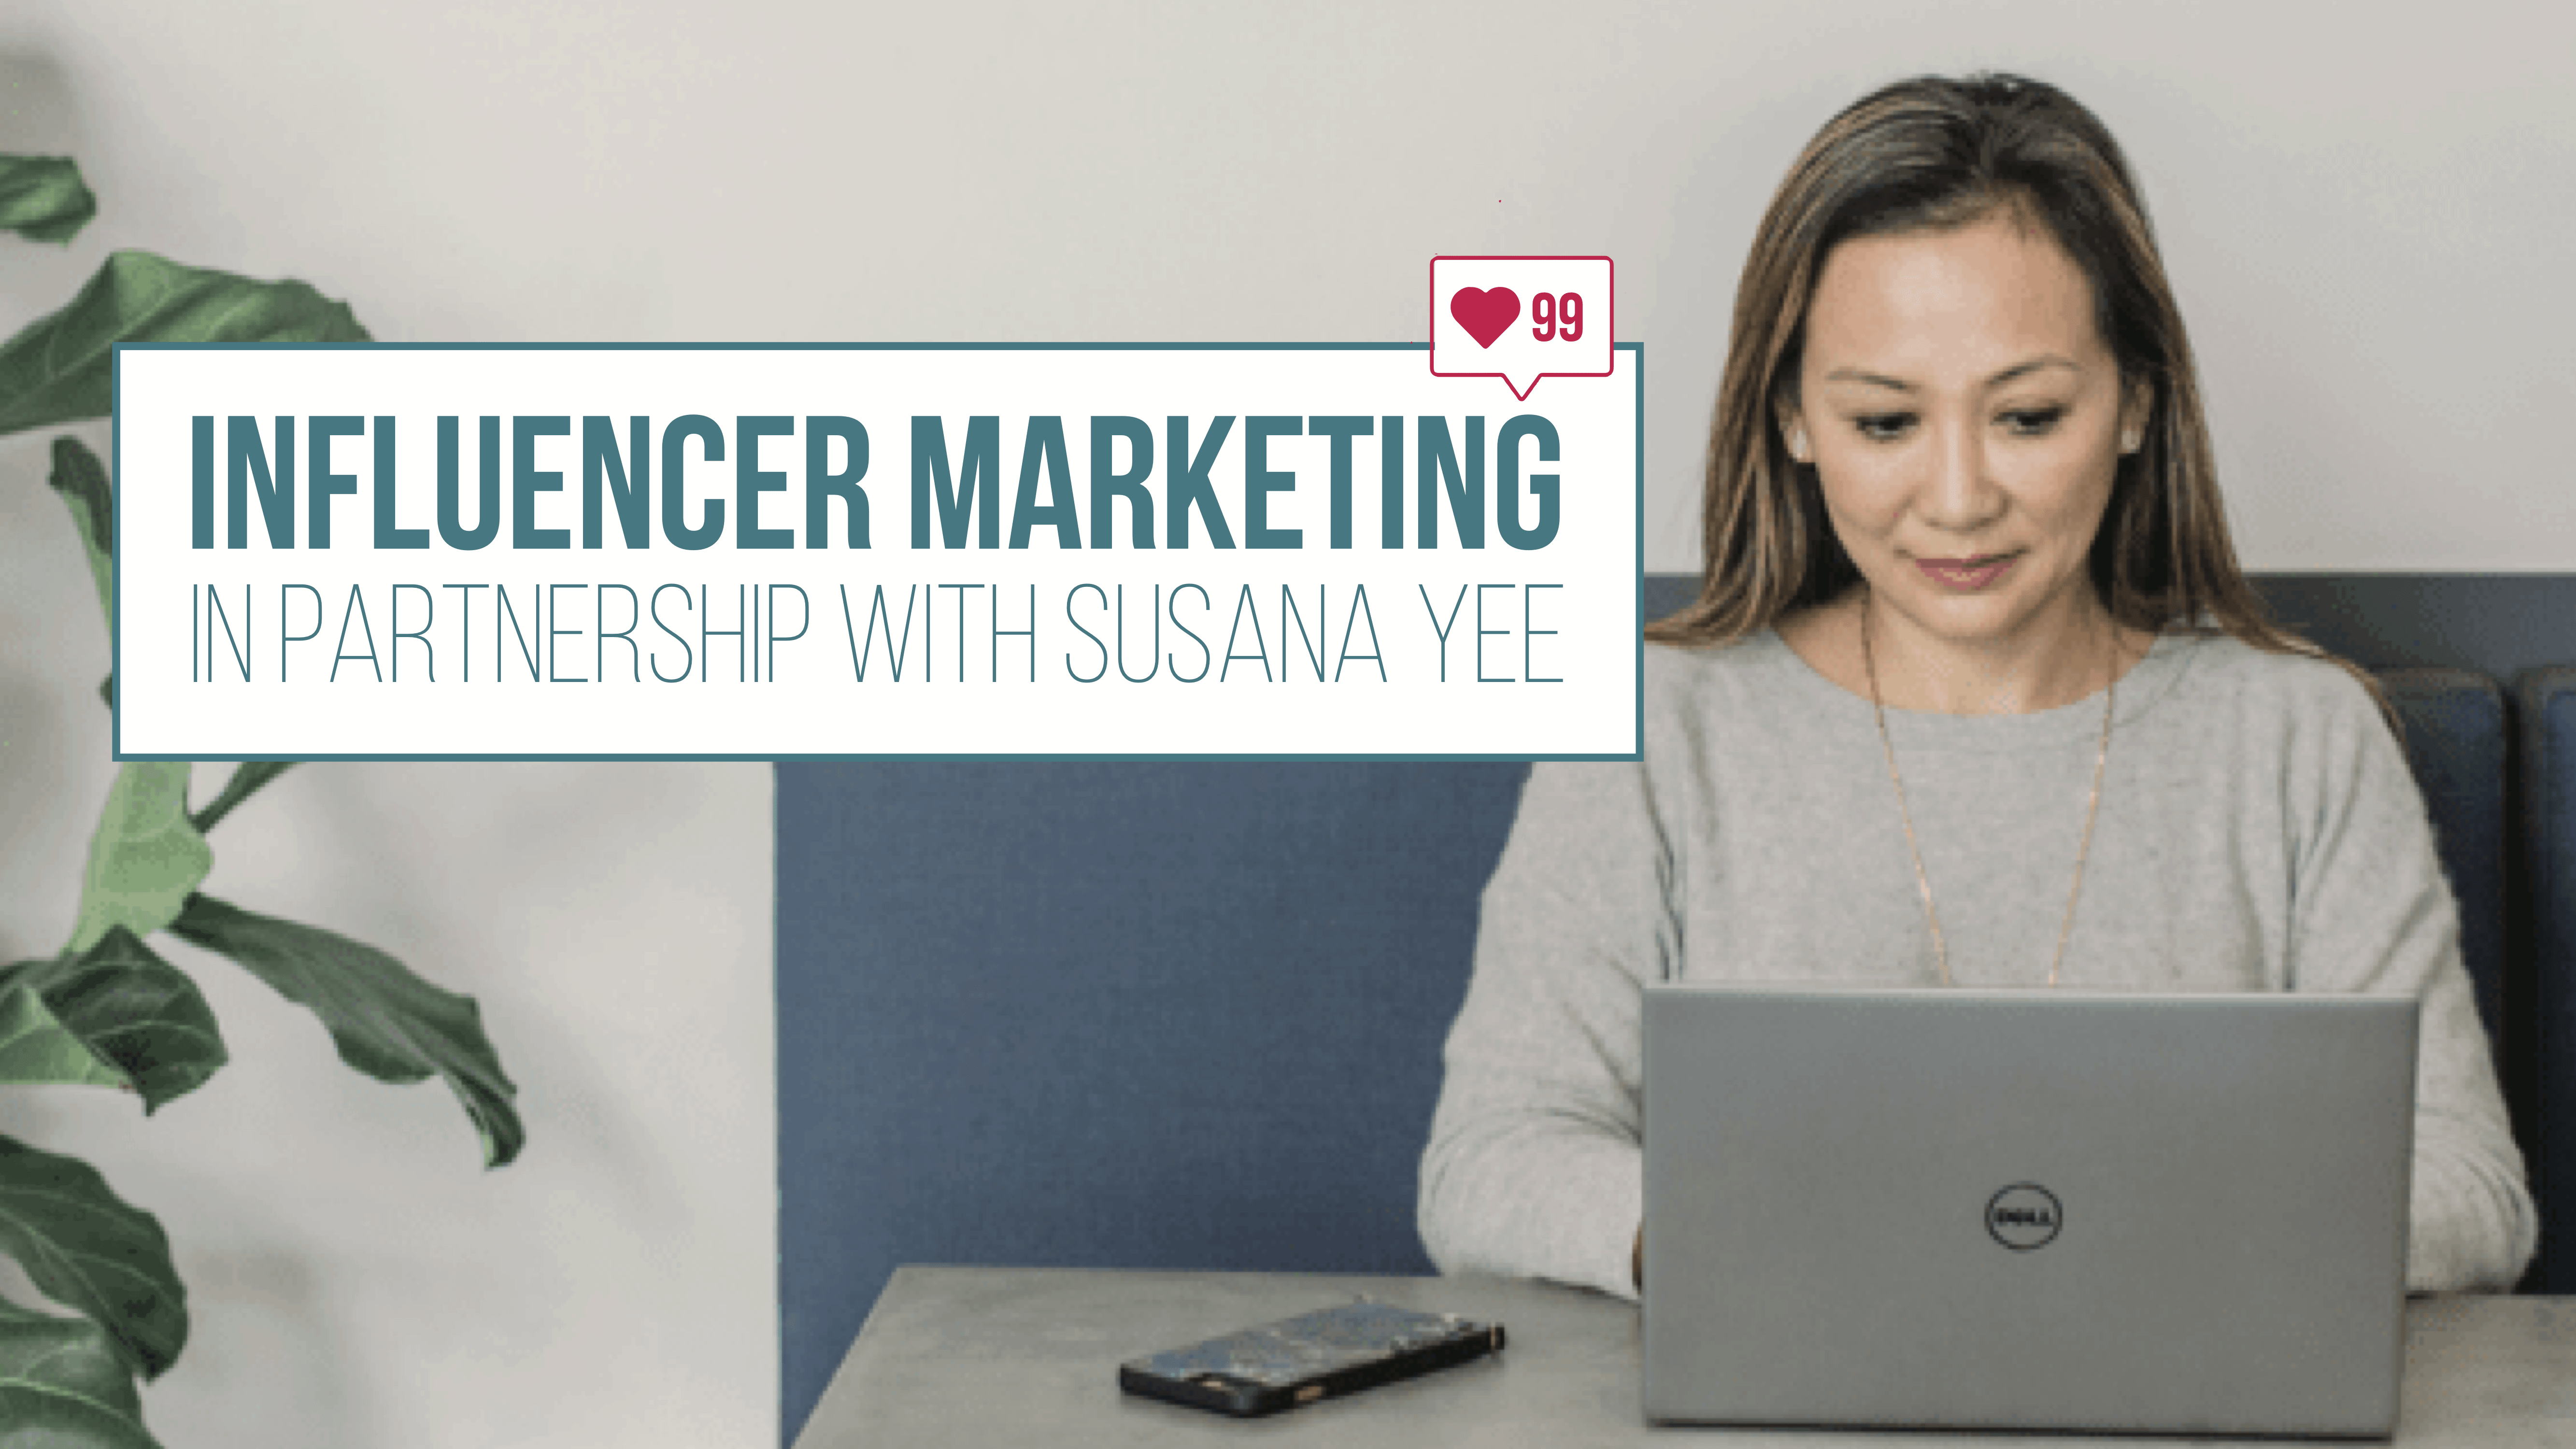 Influencer Marketing by Susana Yee